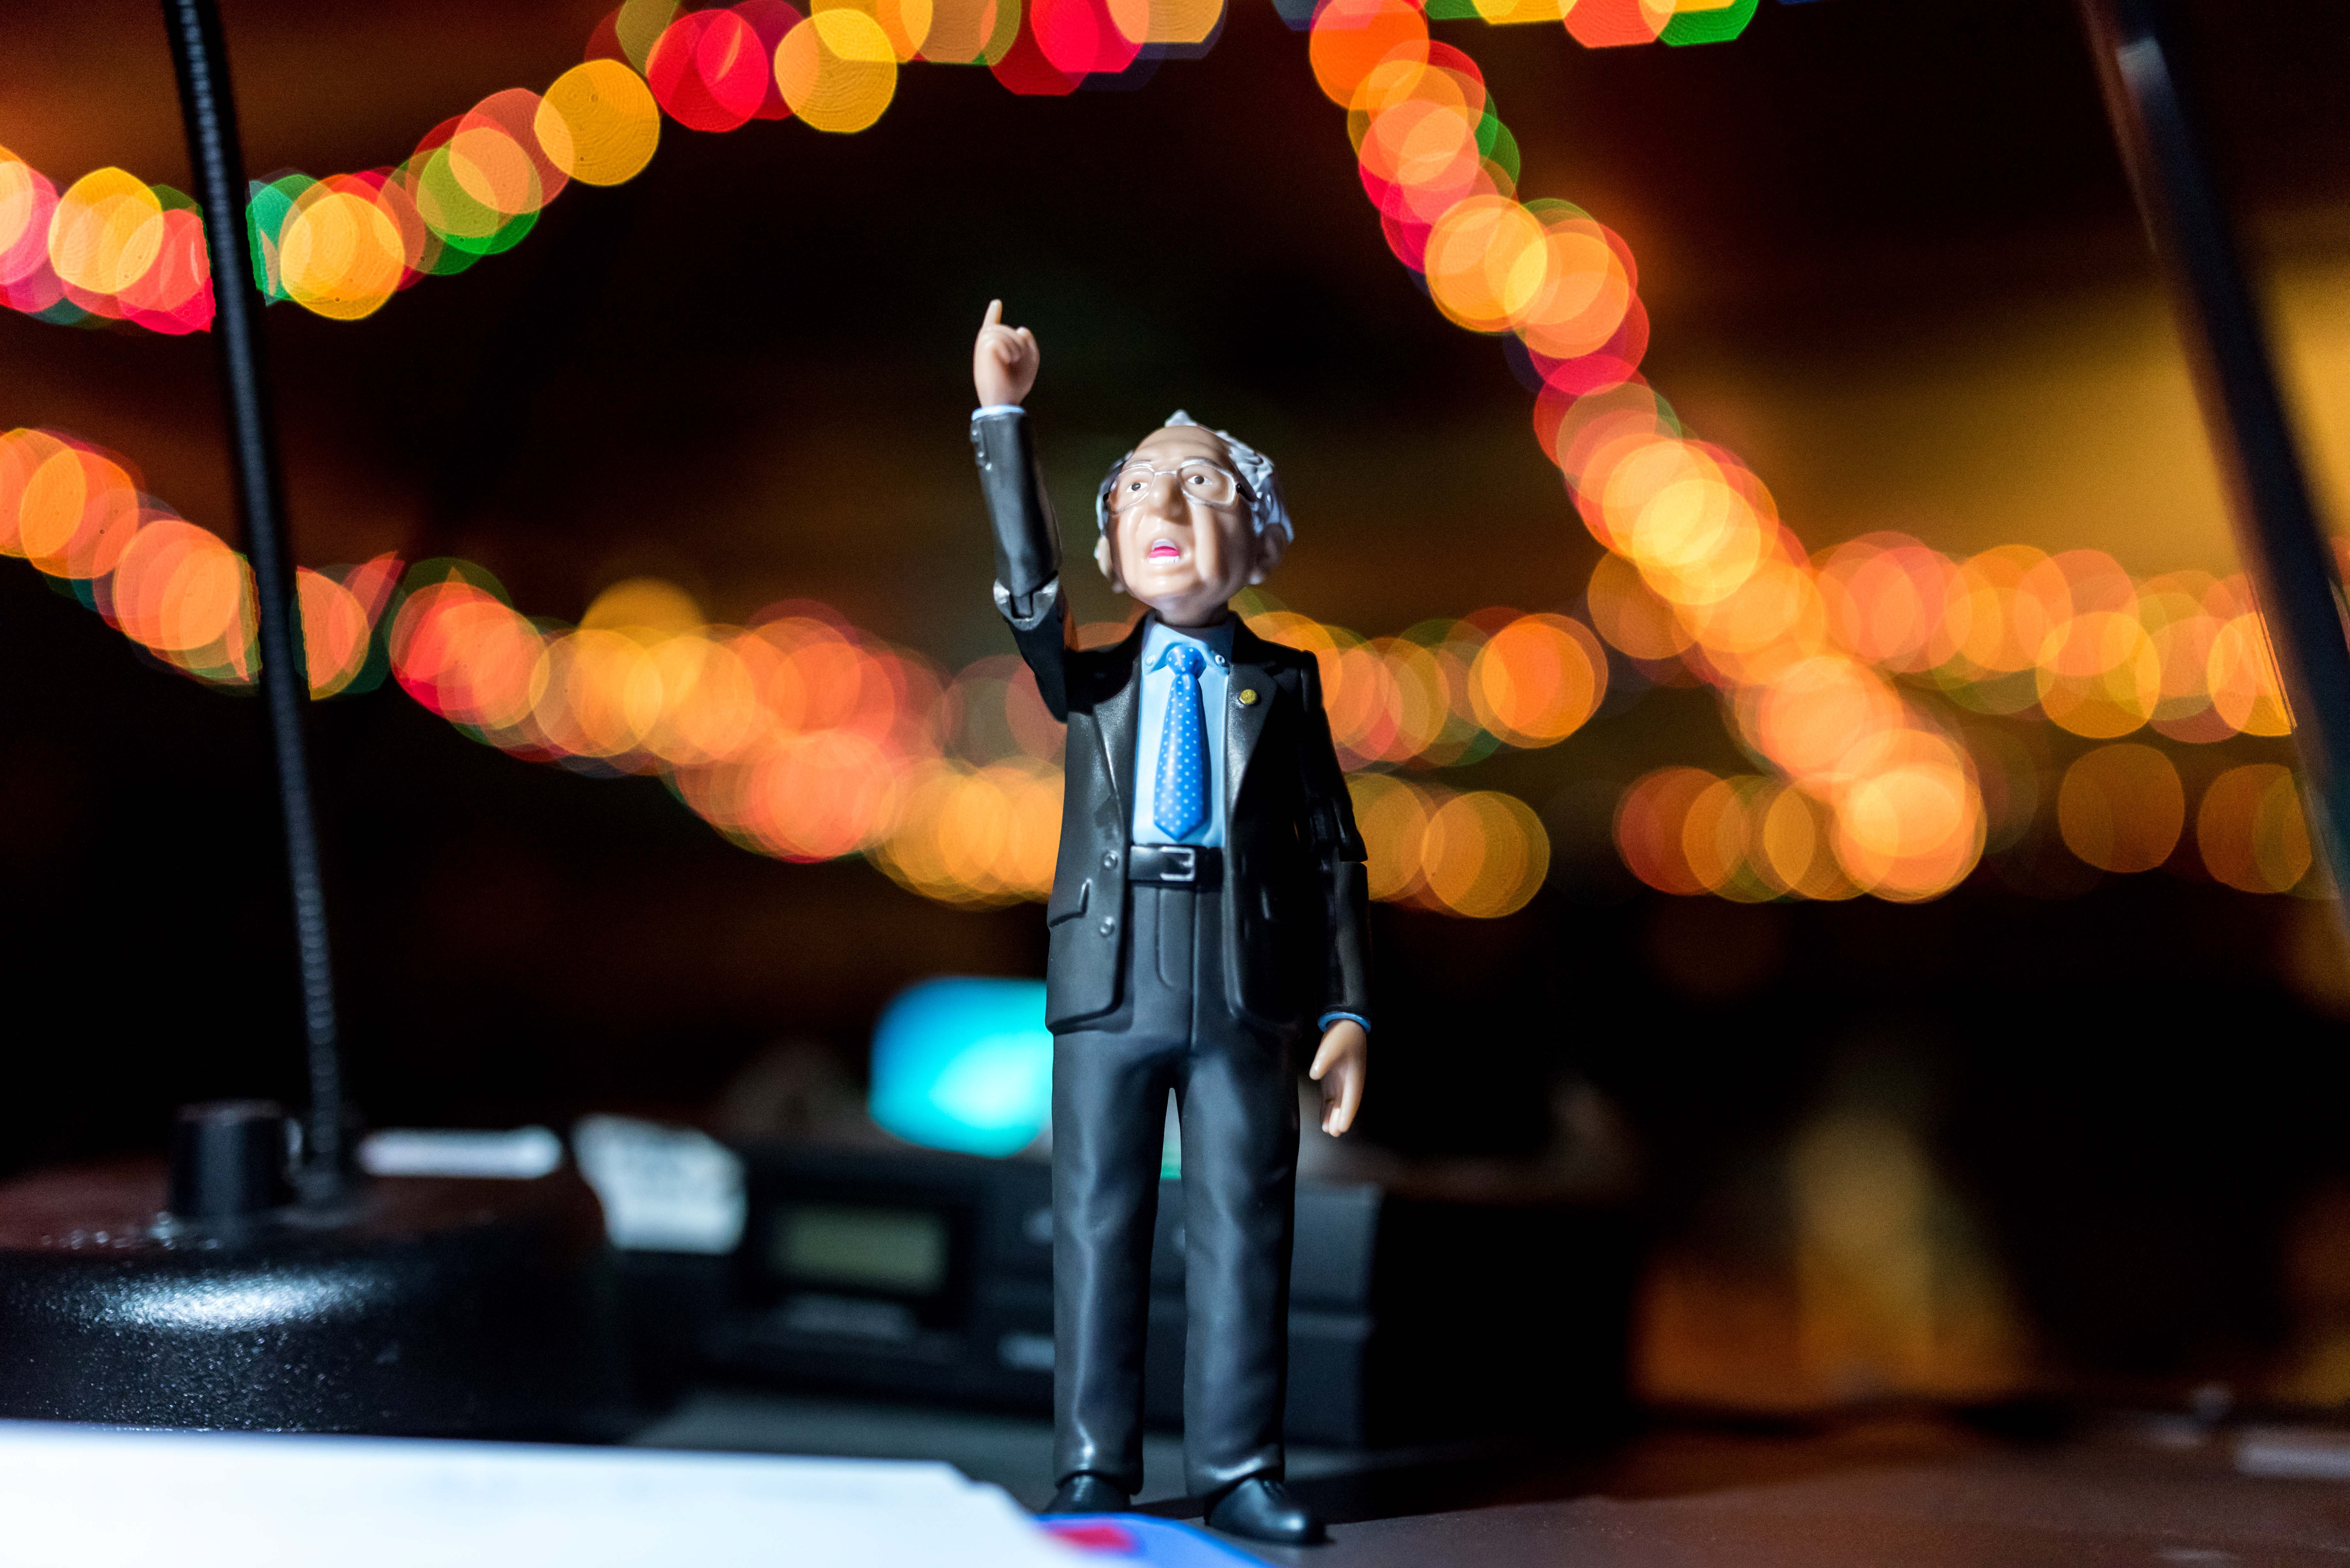 A Bernie Sanders action figure at the soundstage